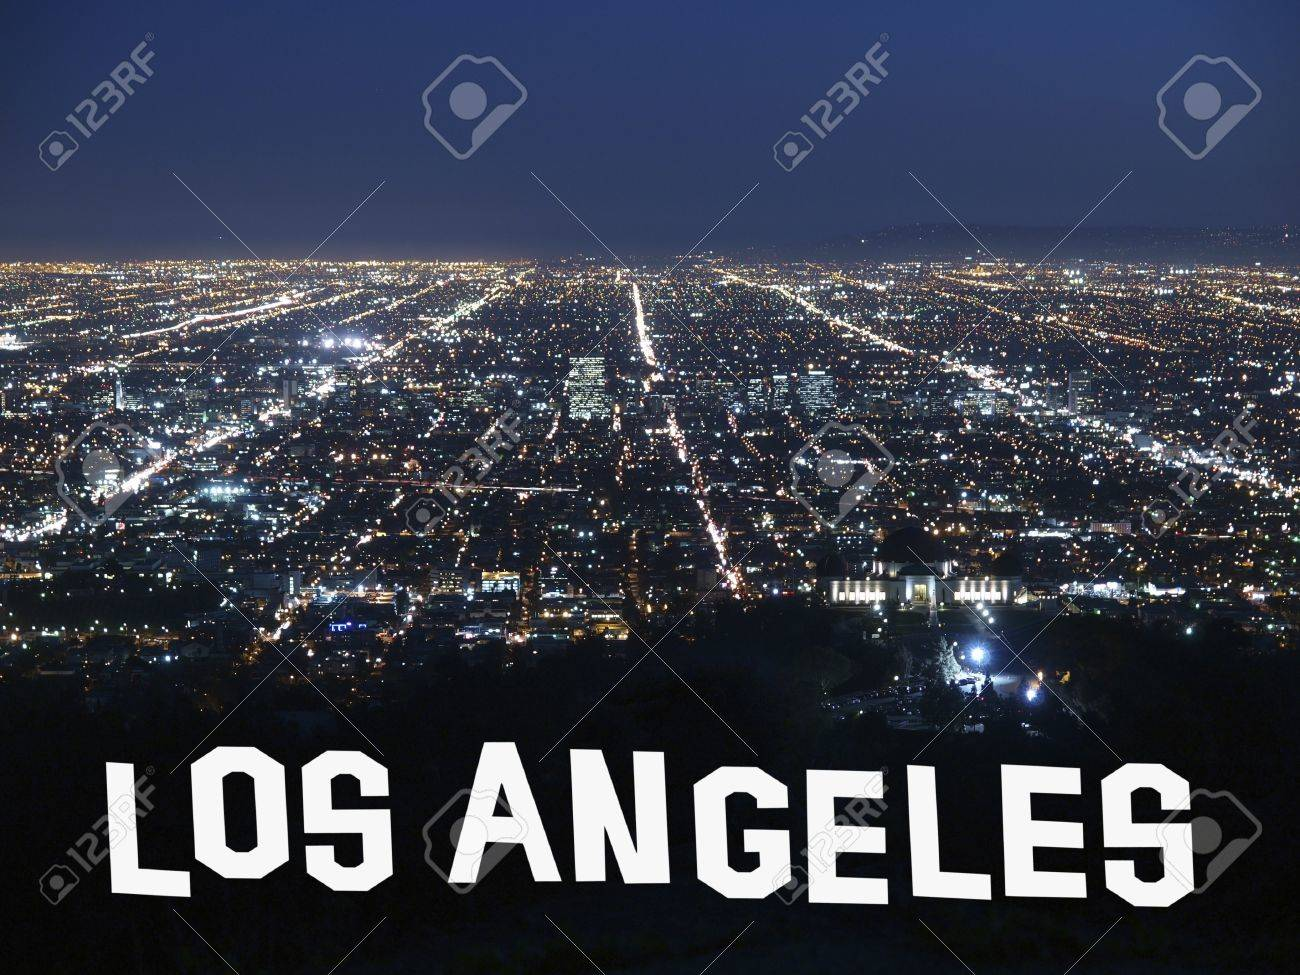 Los Angeles California at night with handmade font graphic. Stock Photo - 14445684